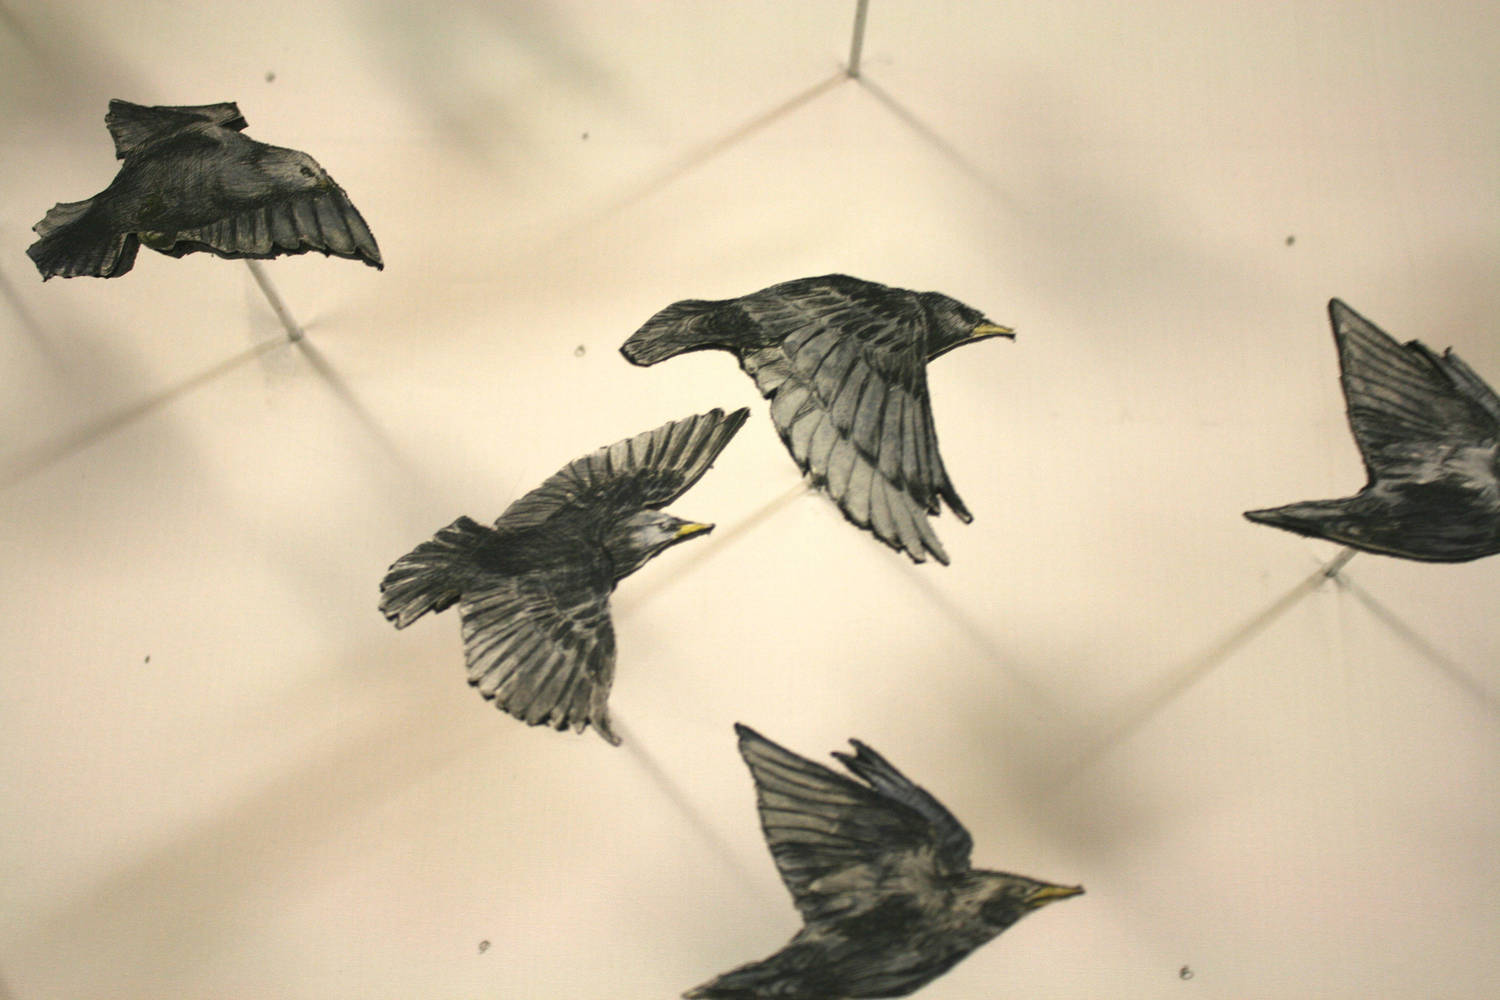 3D Flock (detail) by Nicole Walters